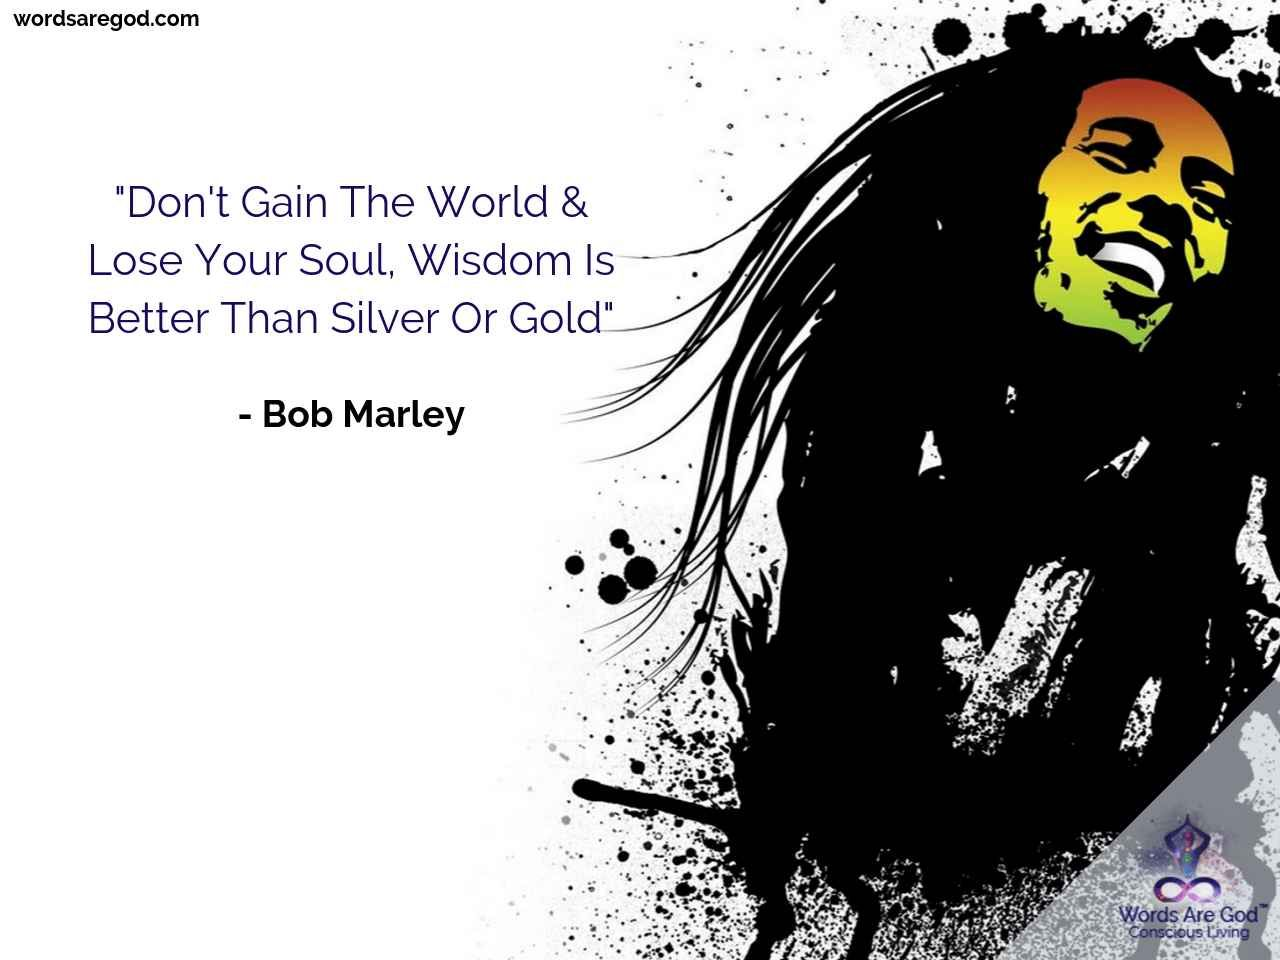 Bob Marley Quotes In 2021 Bob Marley Quotes Bob Marley Emancipate Yourself From Mental Slavery